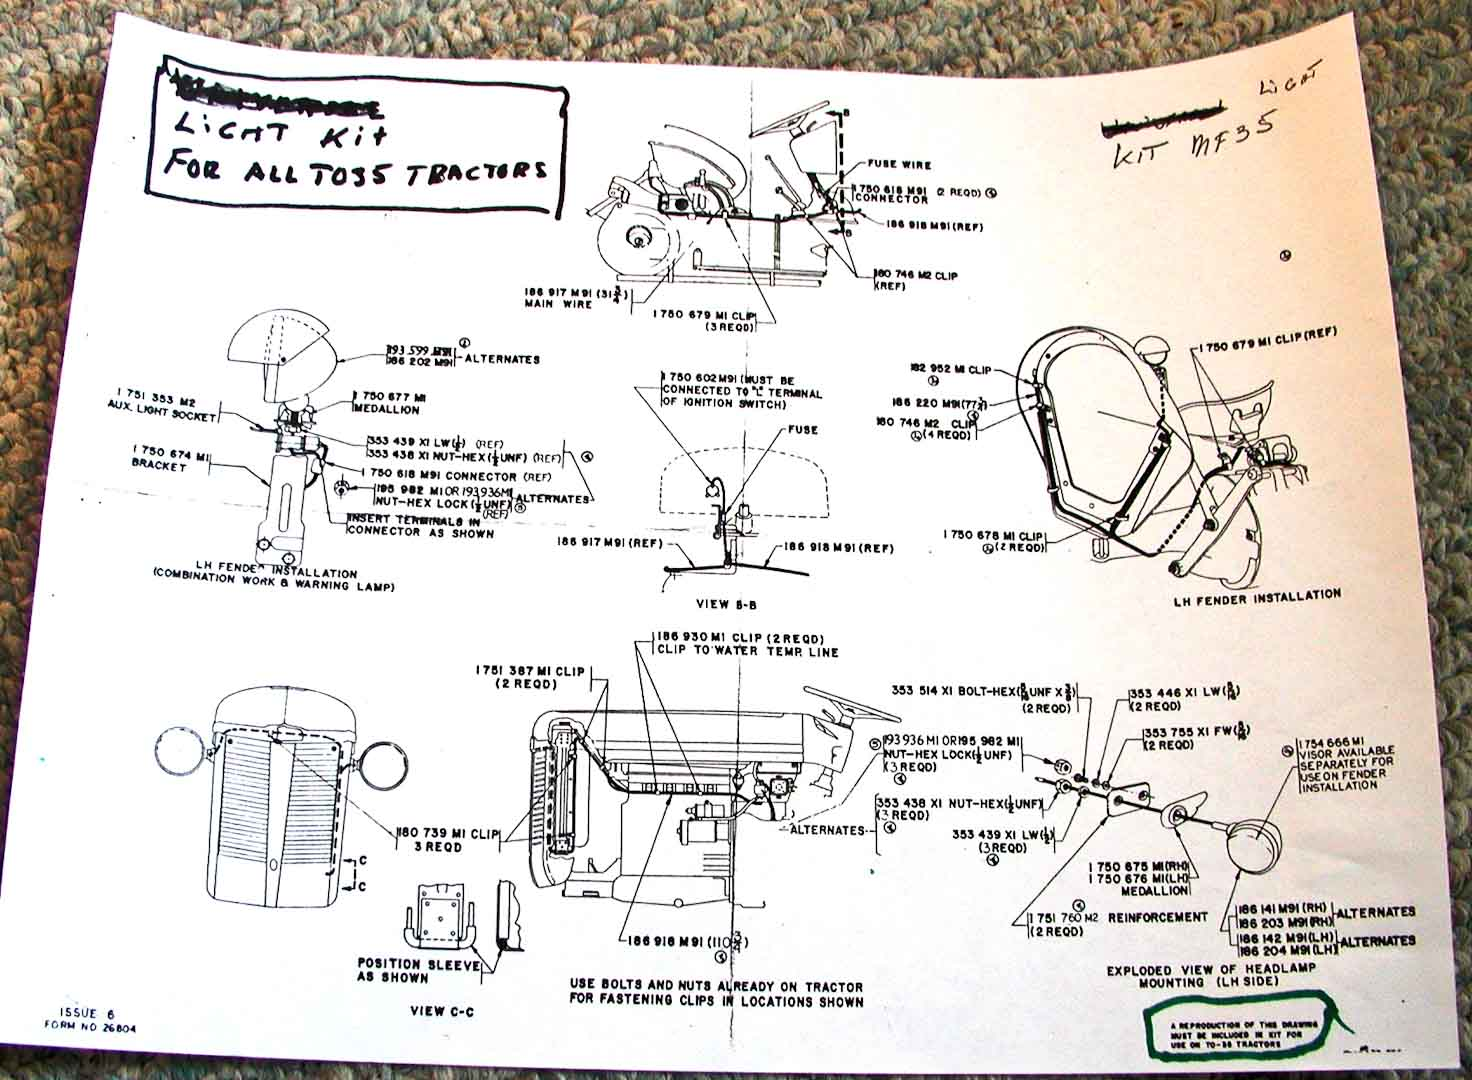 ferguson f40 wiring diagram wire data schema u2022 rh lemise co Massey Ferguson Wiring-Diagram Massey Ferguson Wiring-Diagram